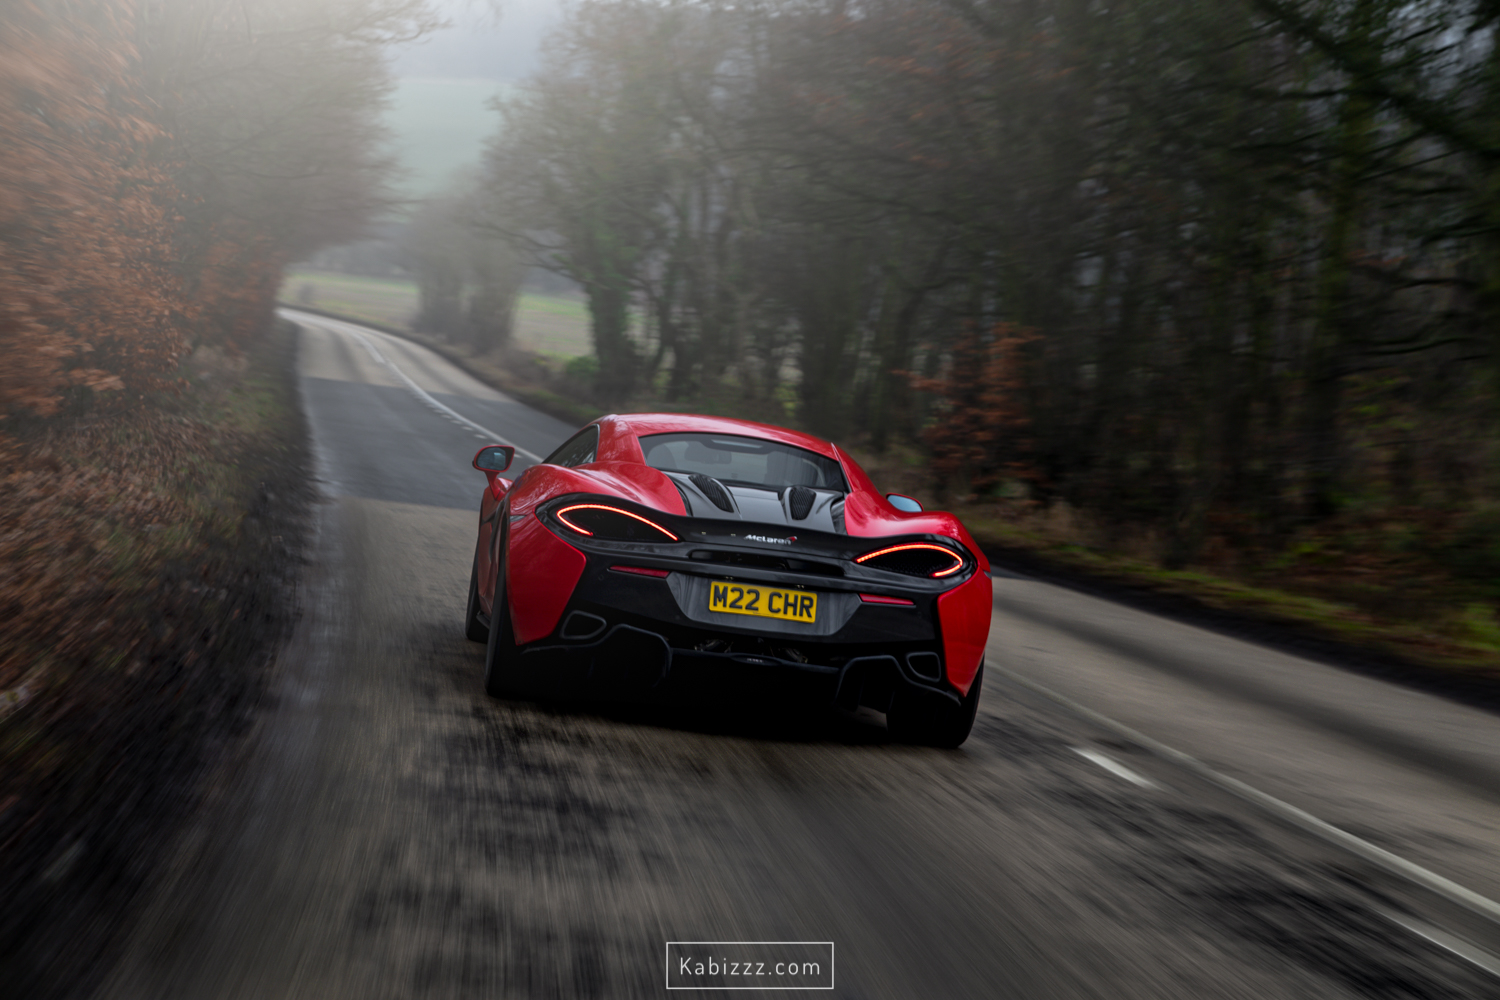 mclaren_540c_red_2019_wm_scotland_photography_automotive_photography_kabizzz-12.jpg